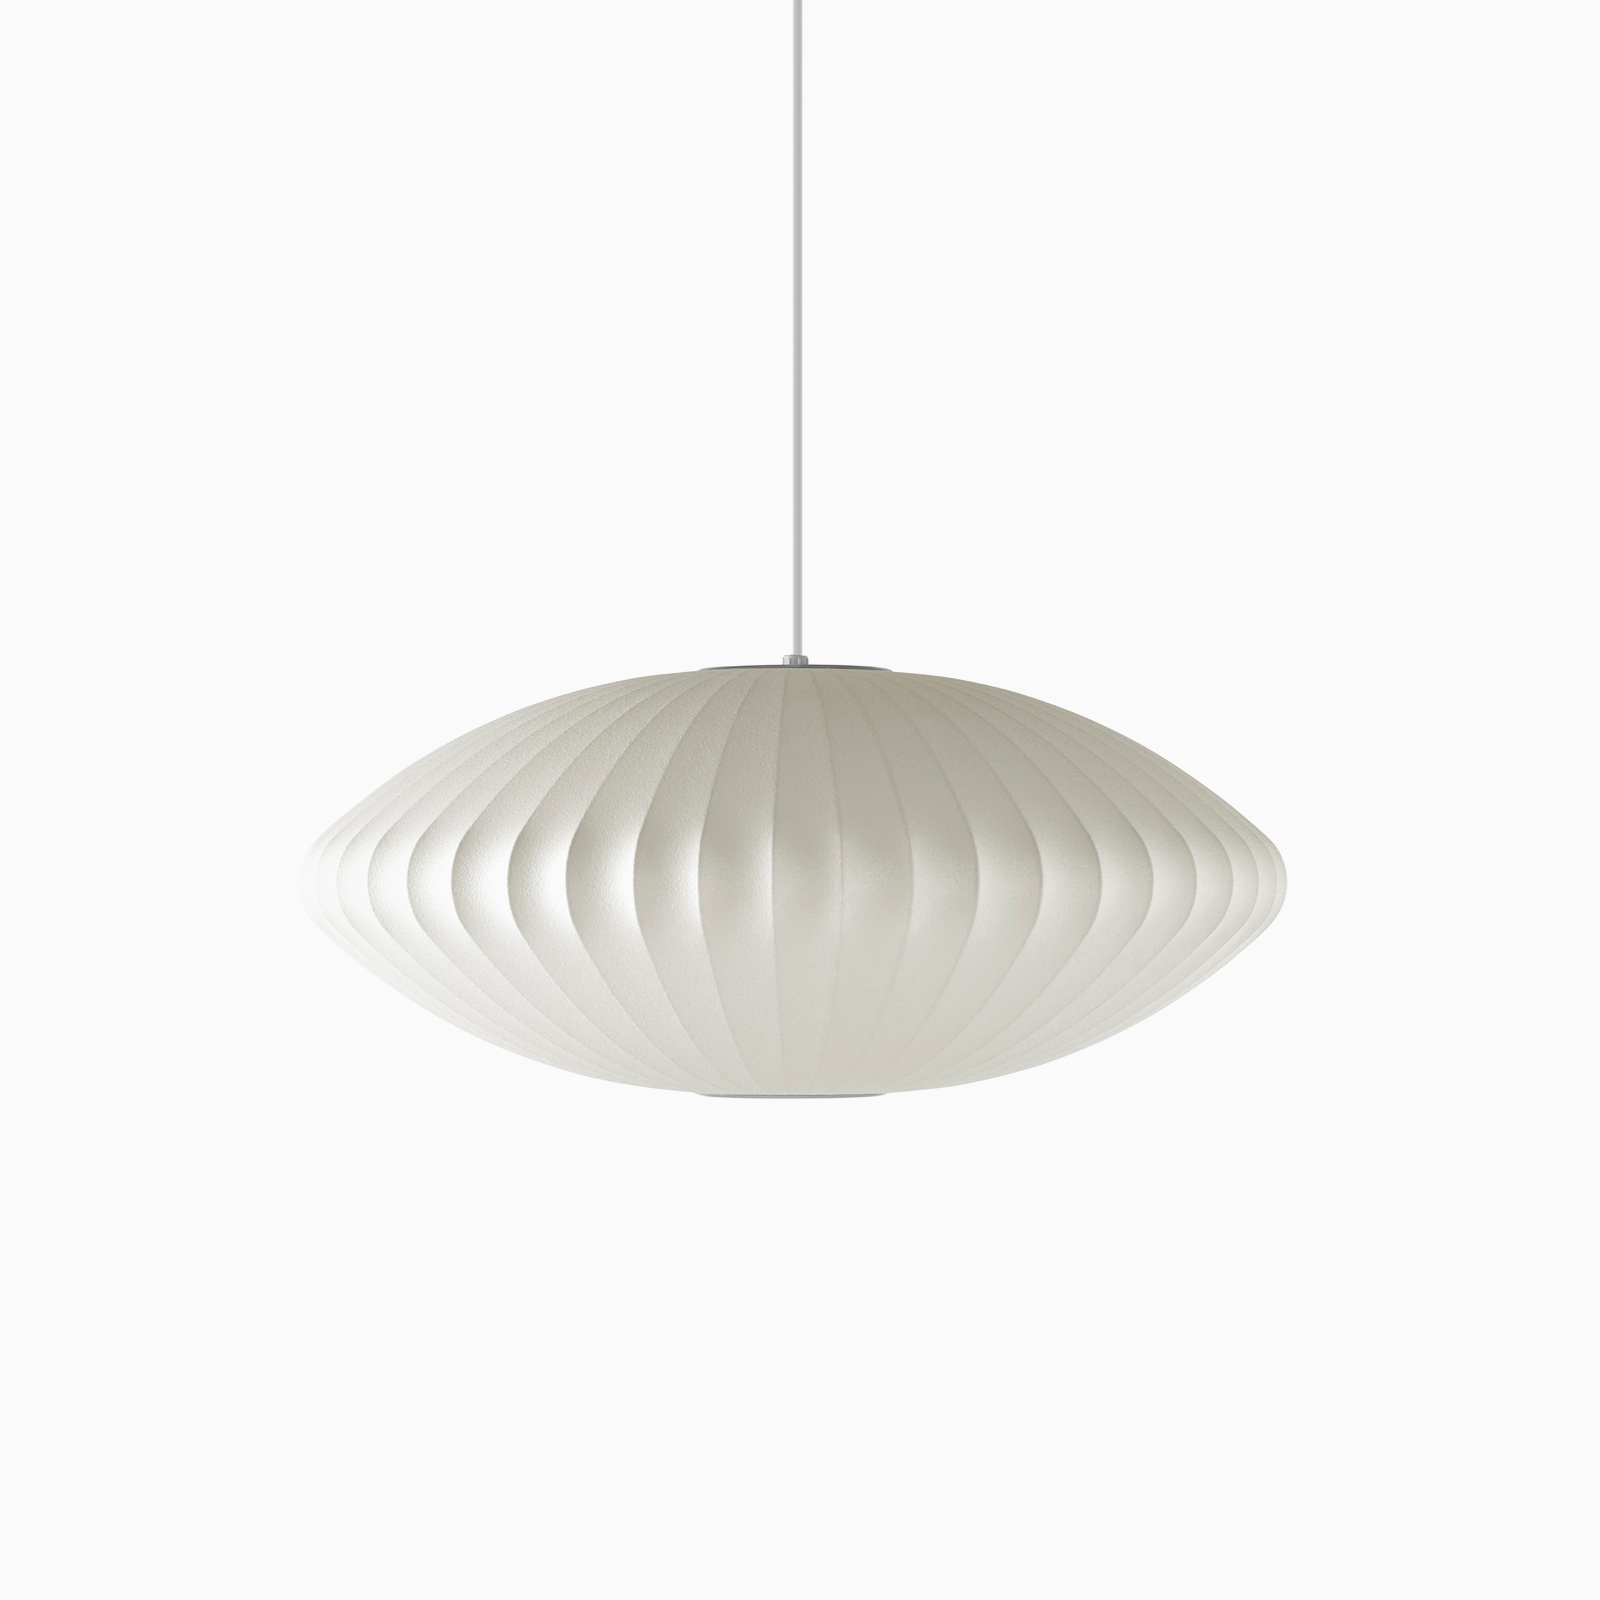 Nelson Bubble Accent Lighting Herman Miller Wiring Light Fixtures In Series Google Search